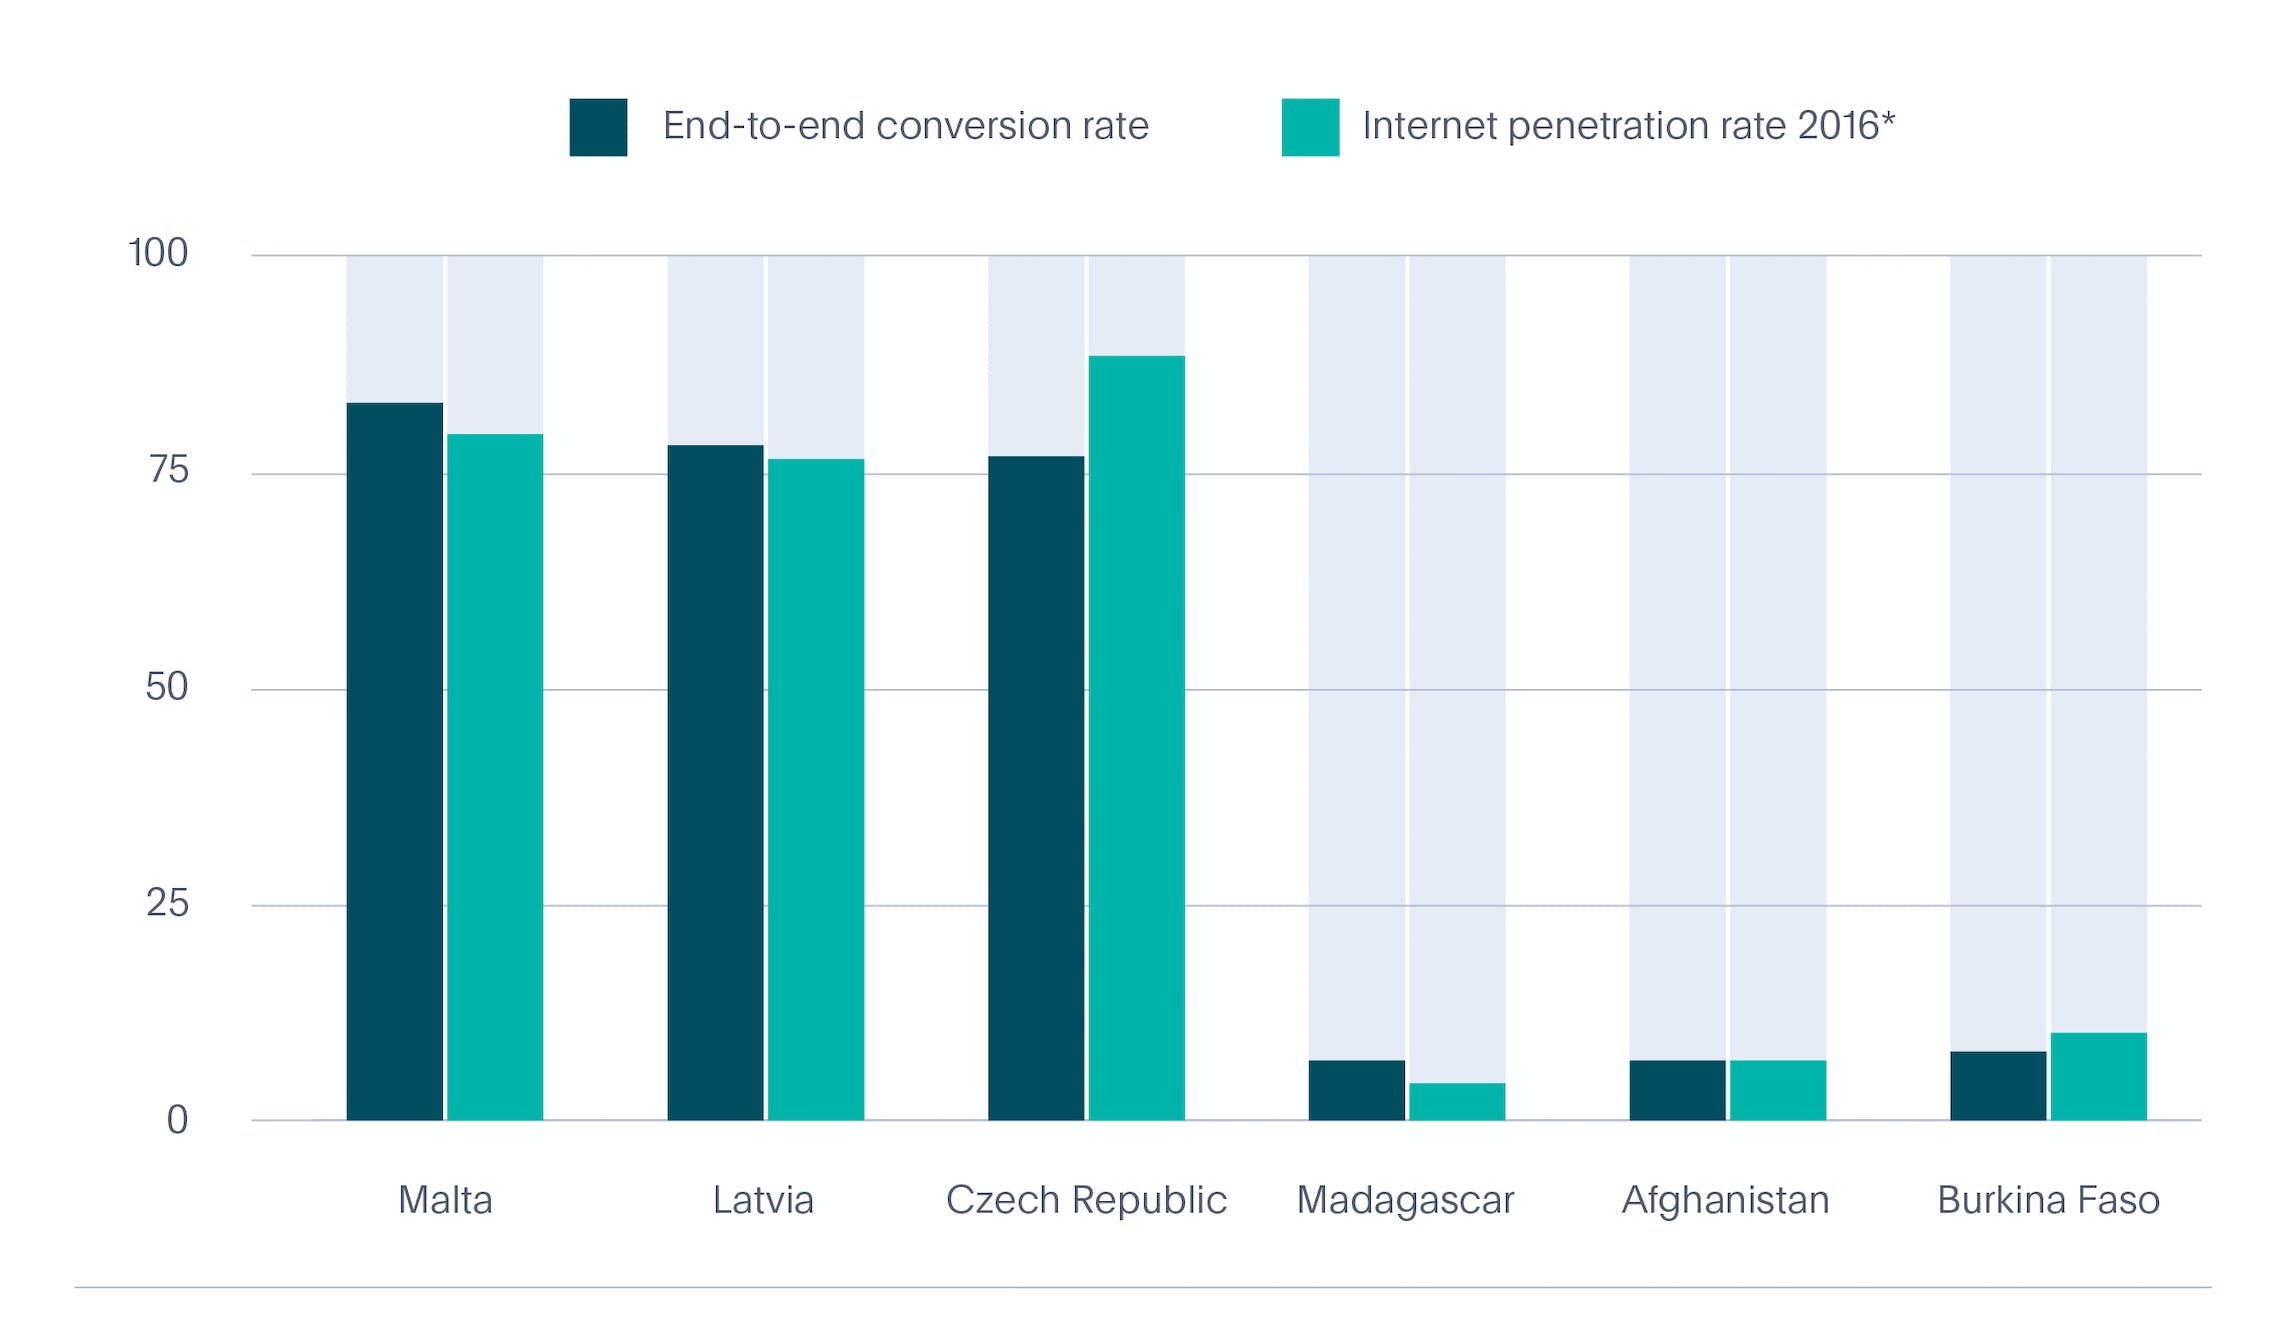 Identity verification conversions vs internet penetration rate